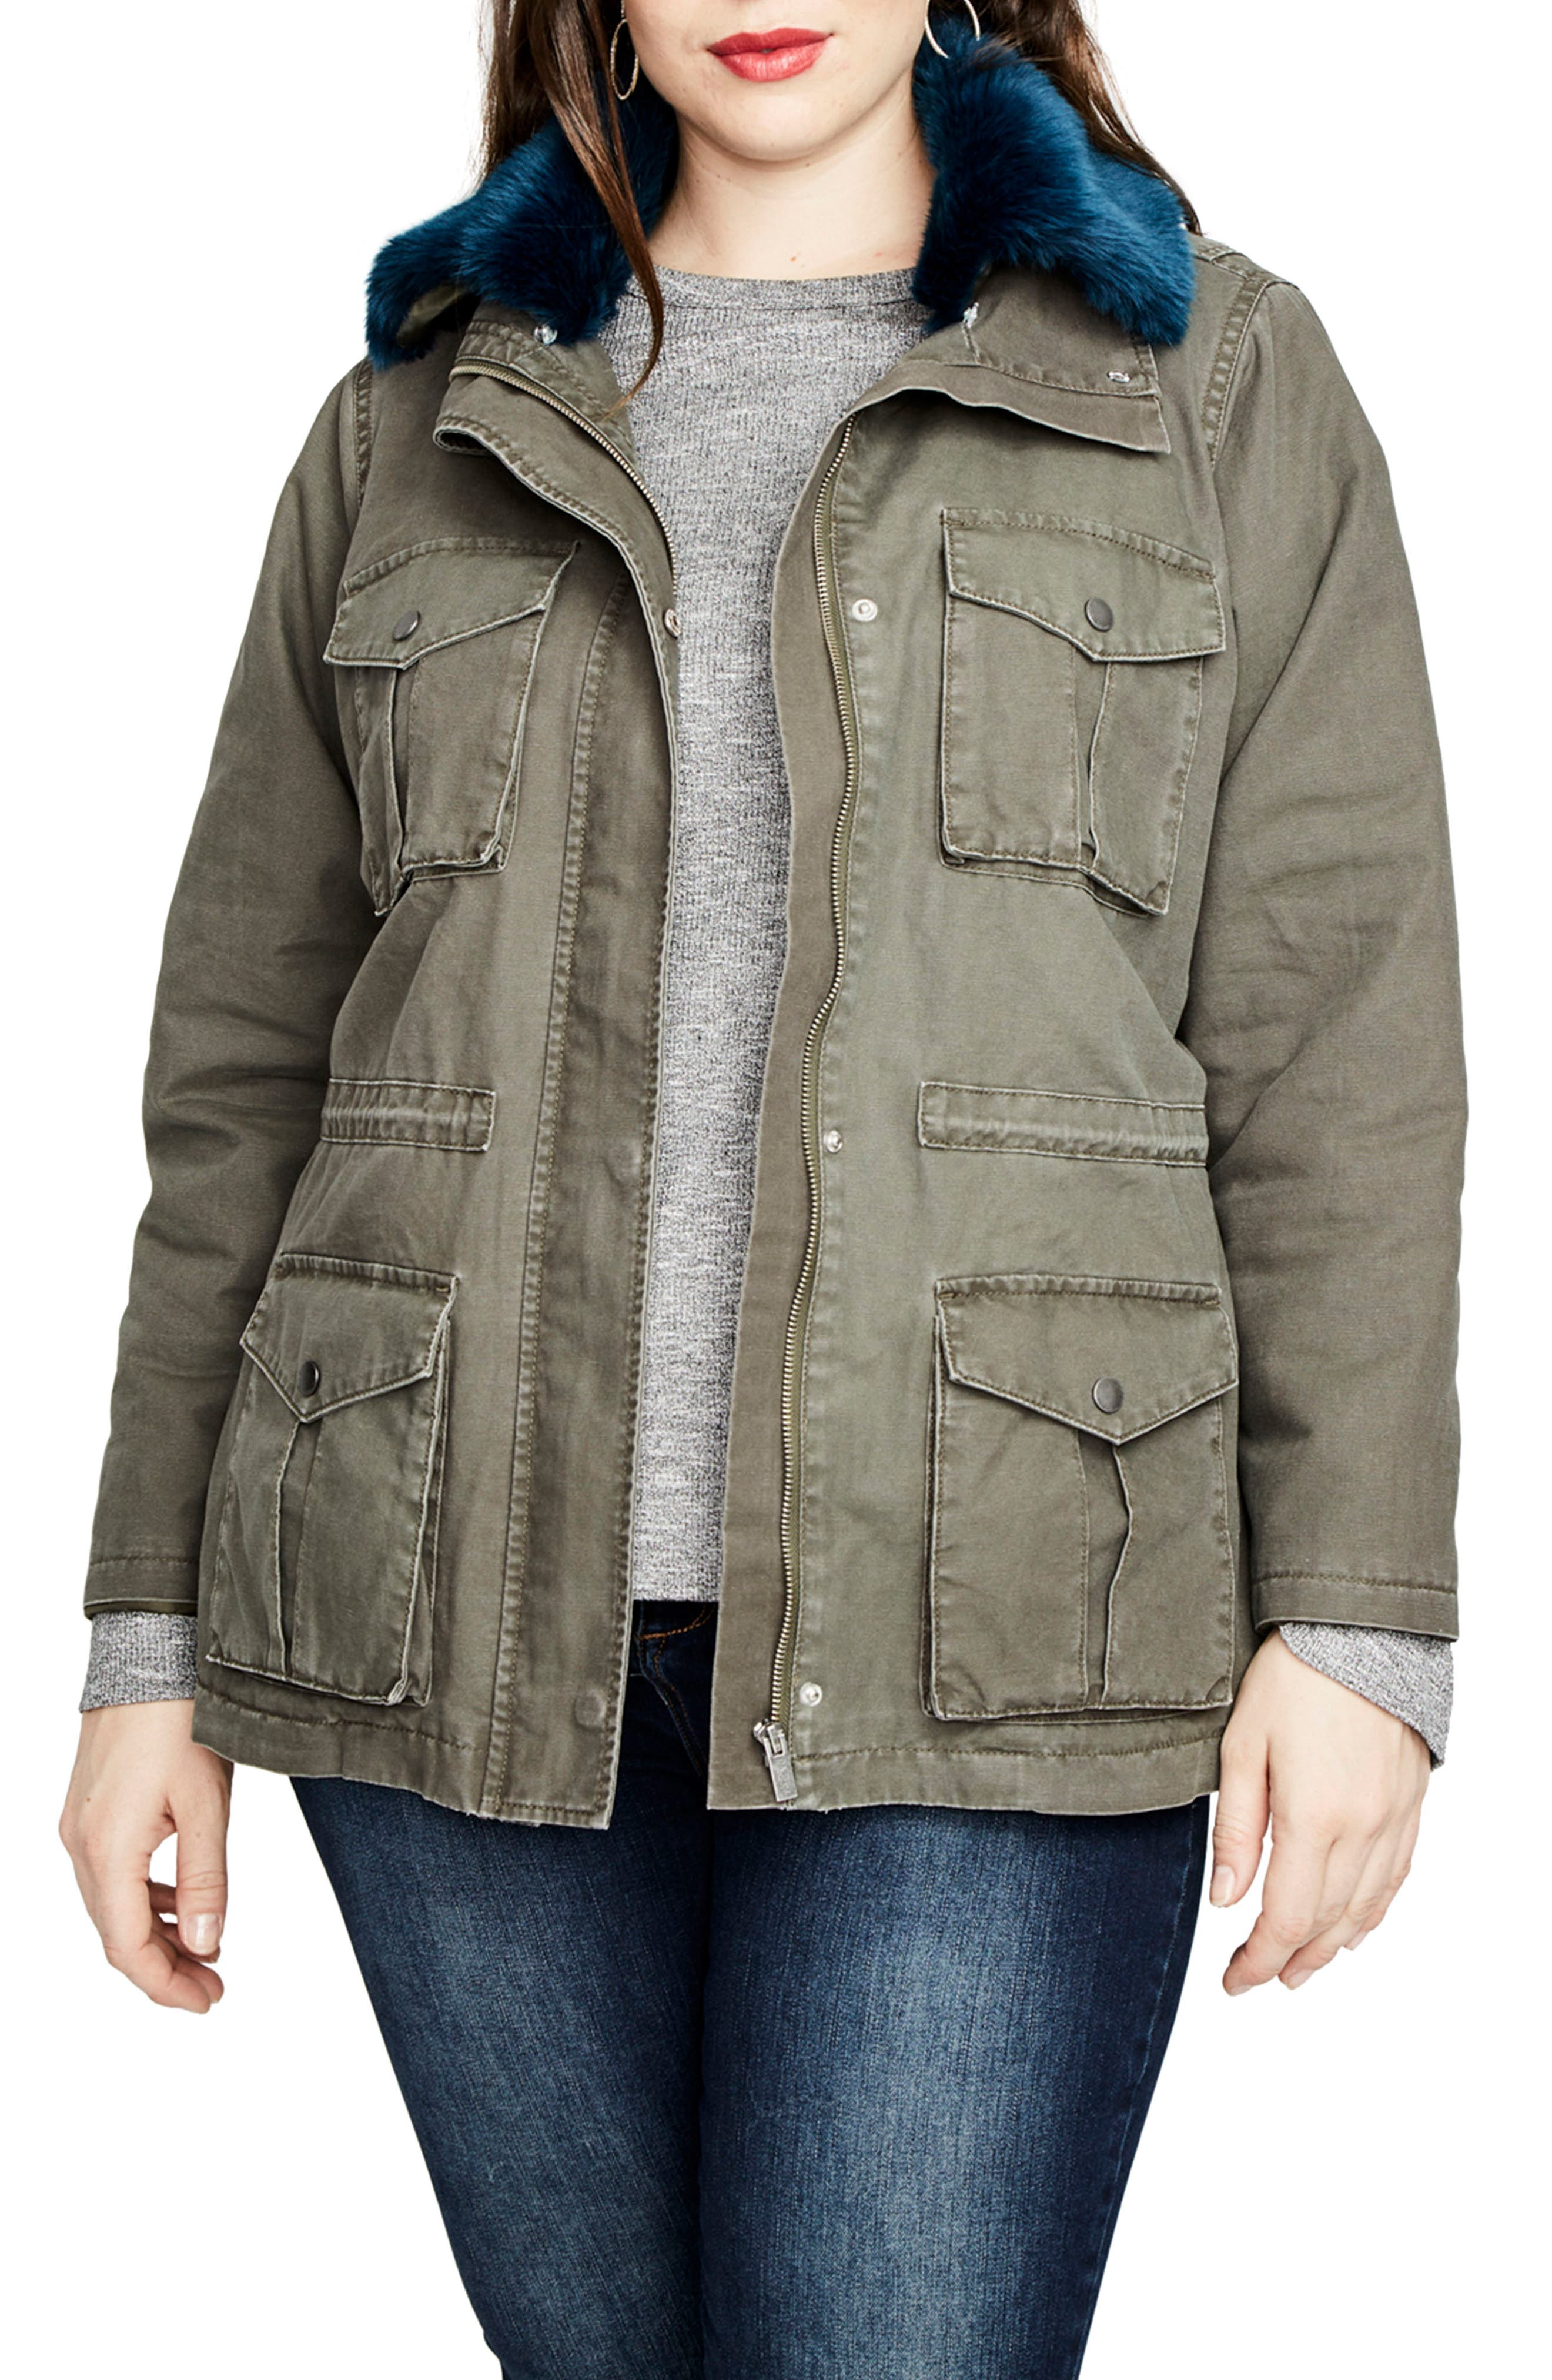 Alternate Image 1 Selected - RACHEL Rachel Roy Faux Fur Trim Parka (Plus Size)